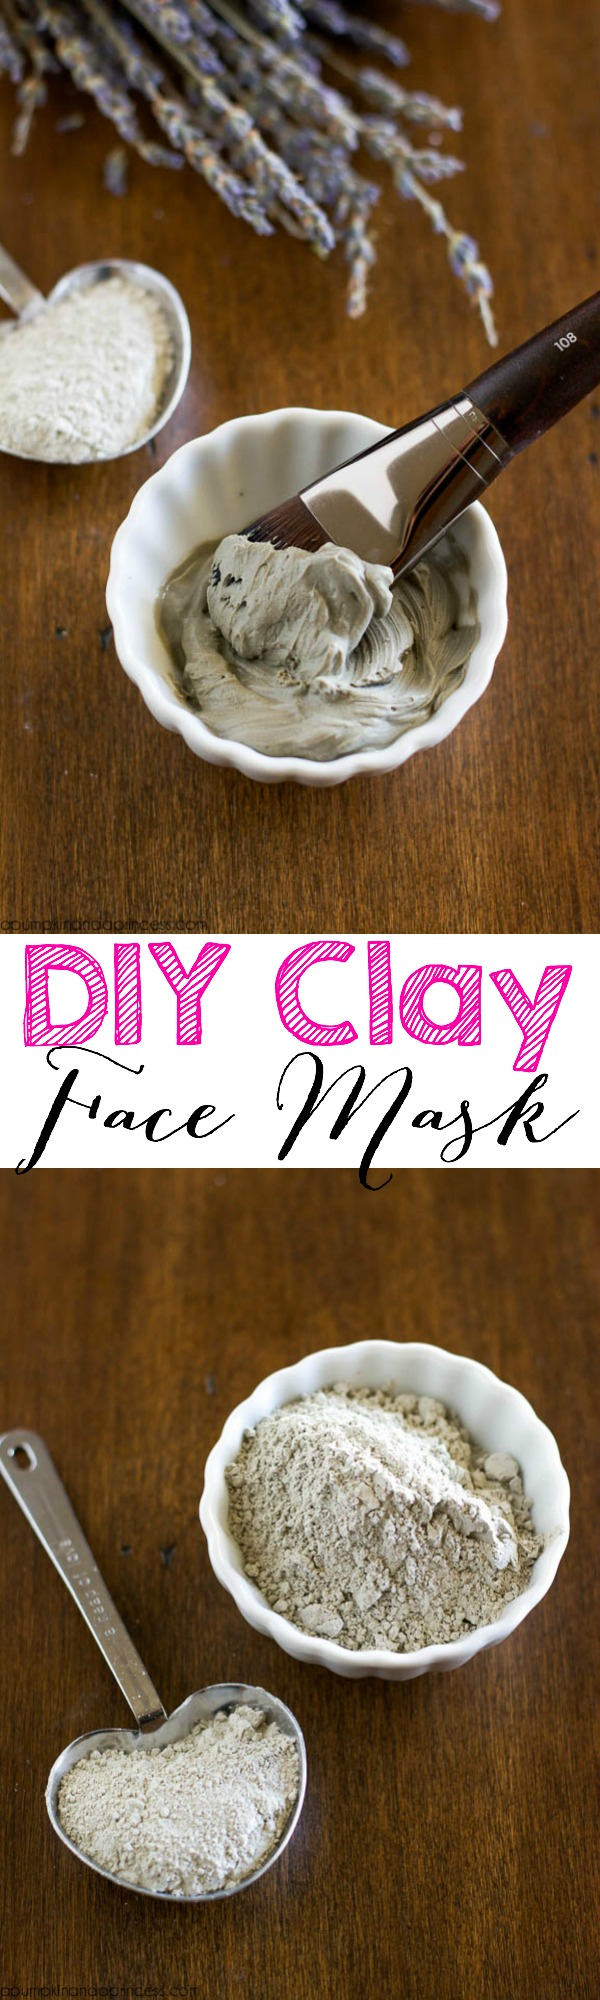 DIY Clay Face Mask